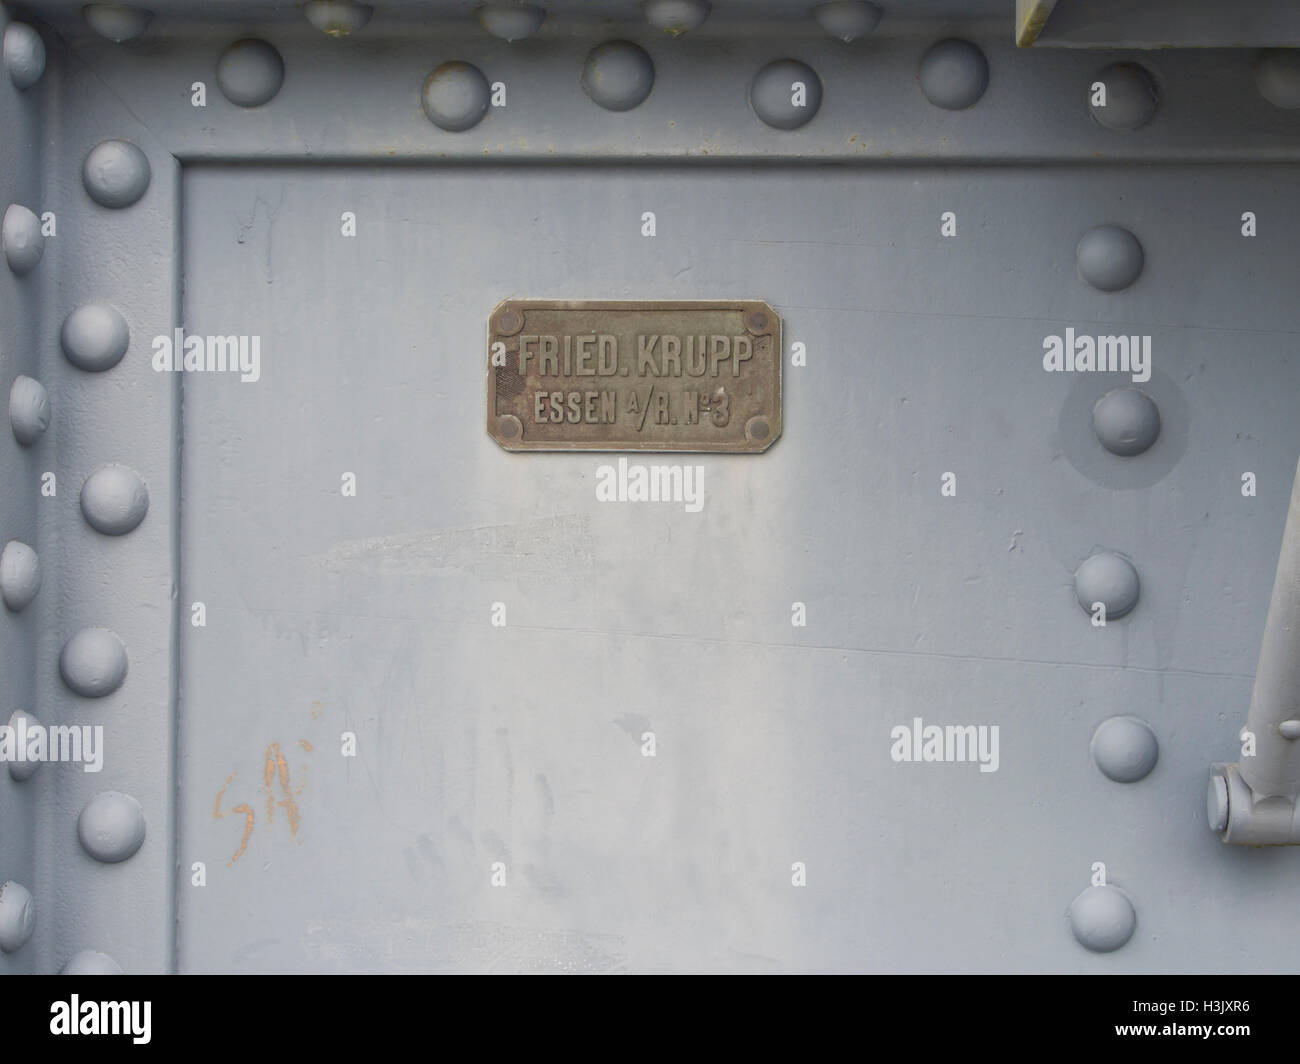 Name plate on 28 cm main battery guns at Oscarsborg fortress in  the Oslo fjord Norway, manufactured by the German - Stock Image